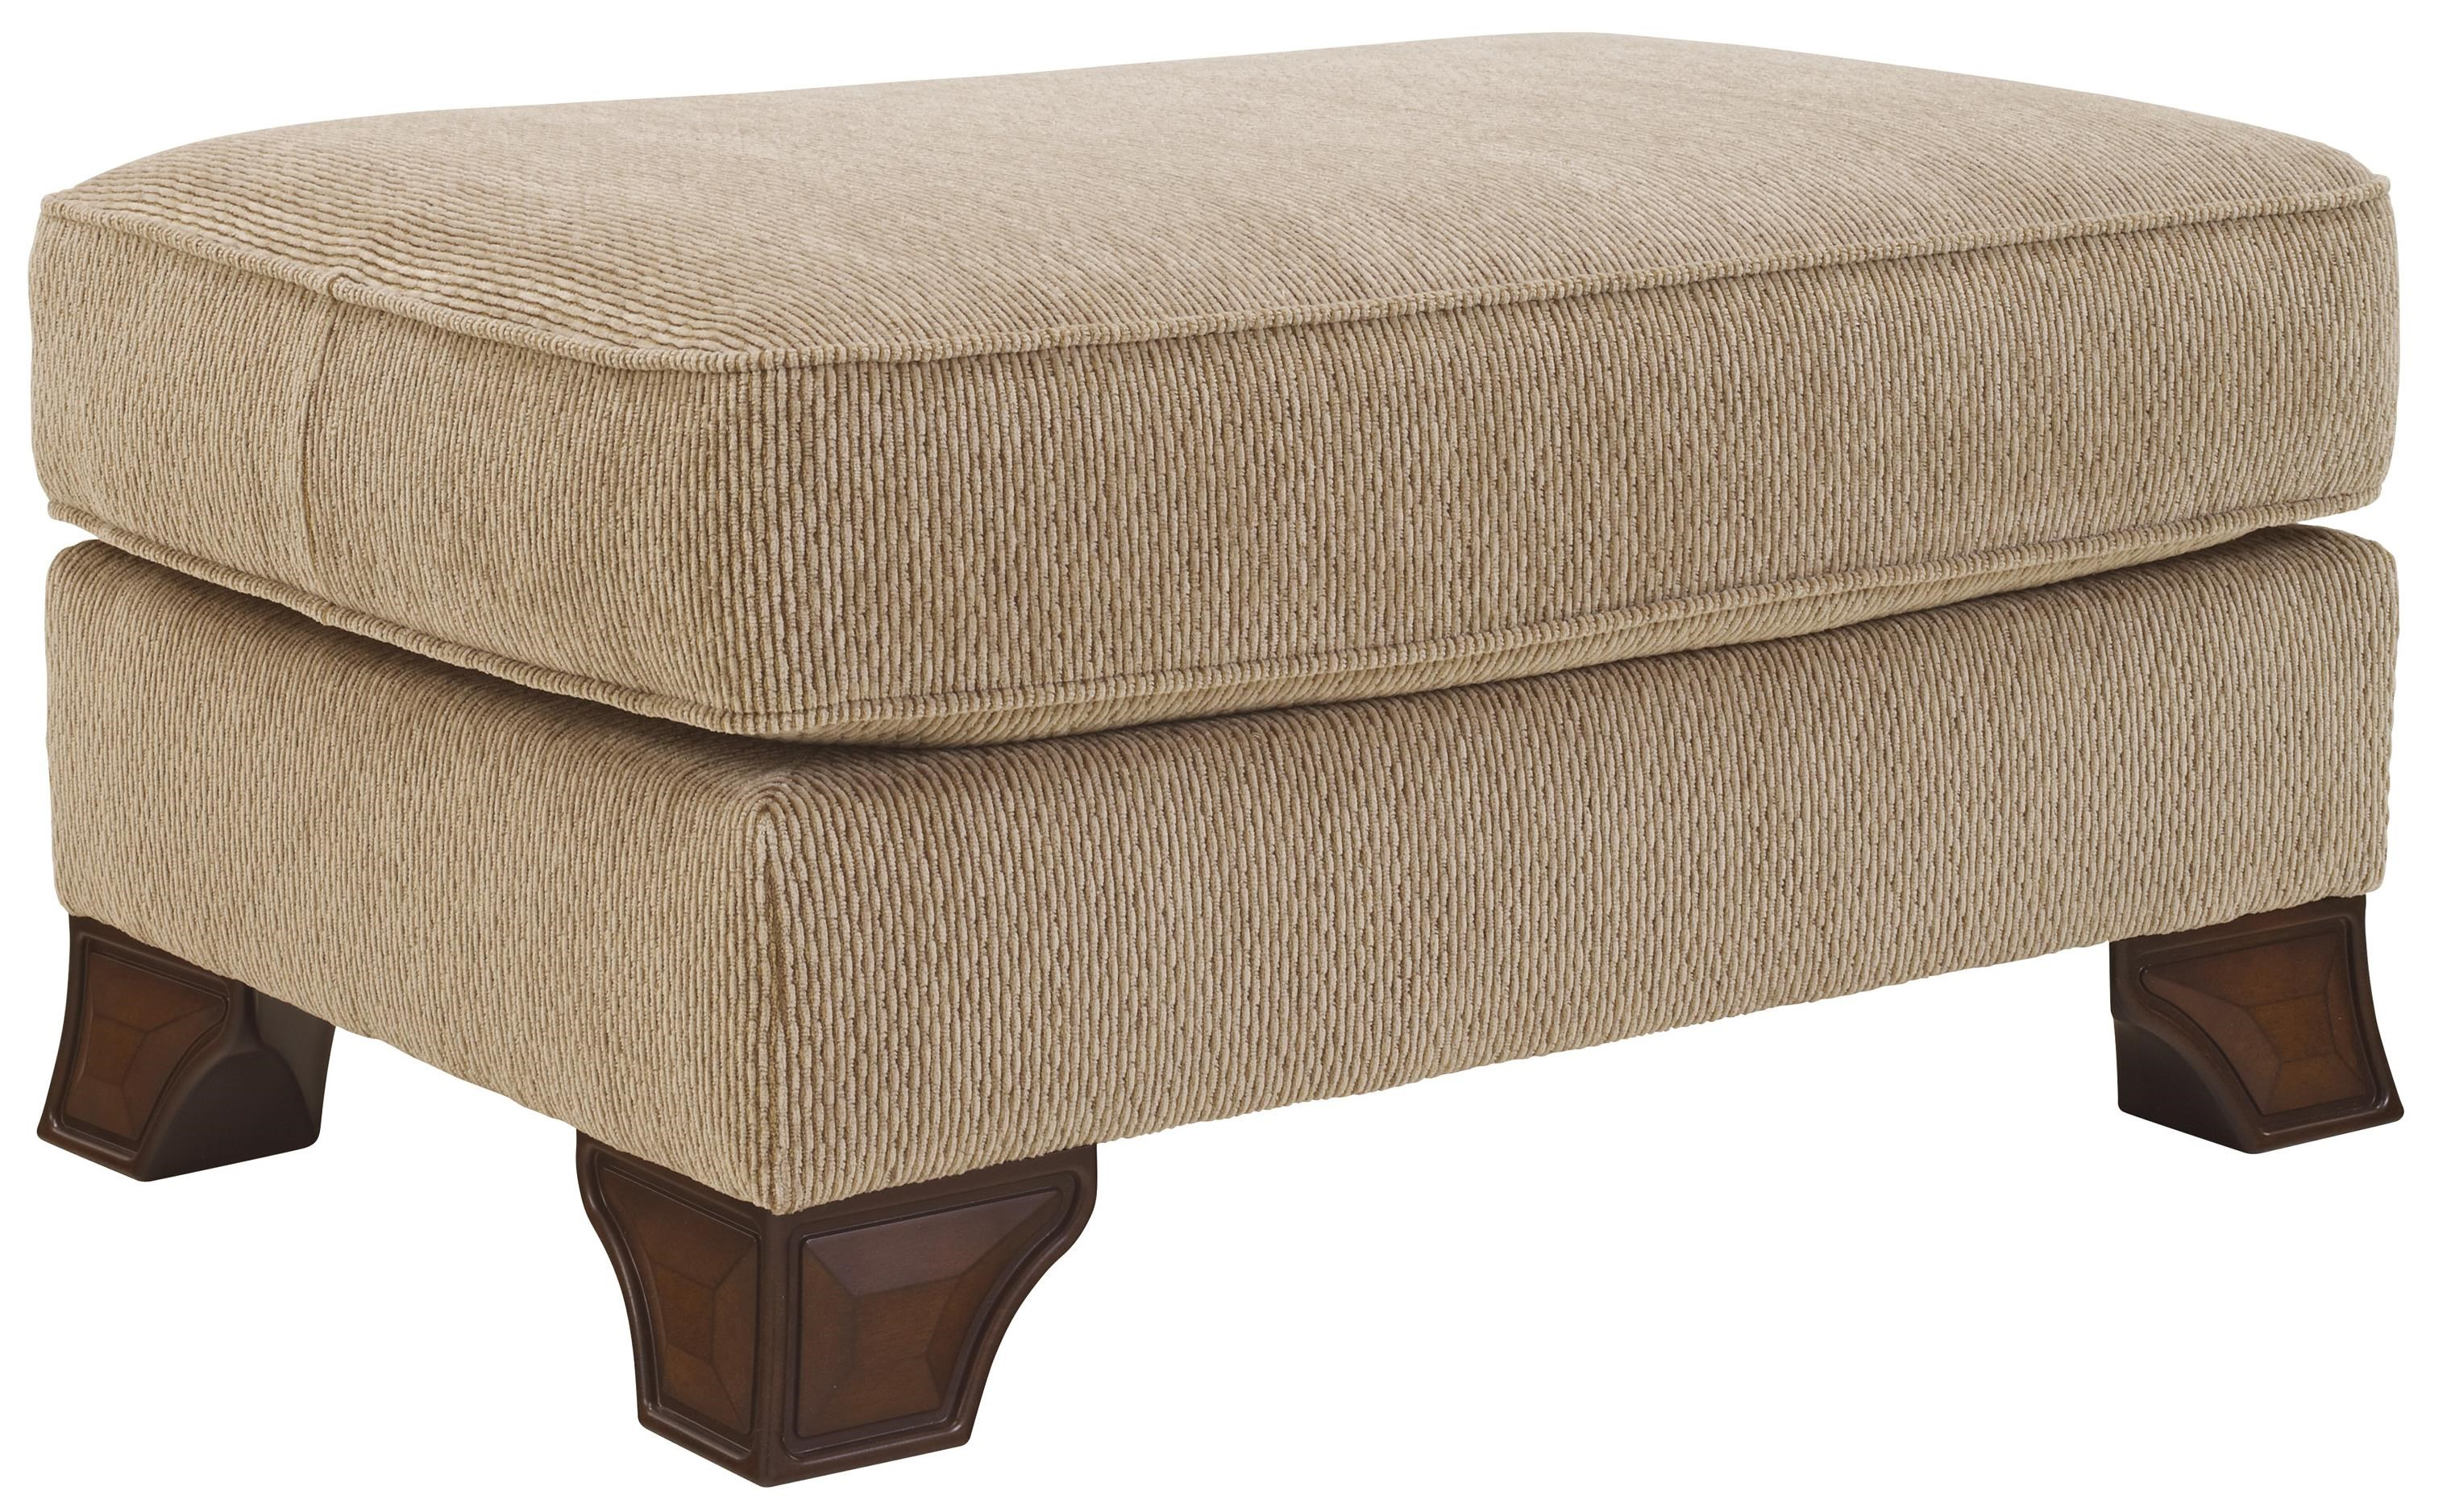 Signature Design by Ashley Lanett Ottoman with Shaped Wood